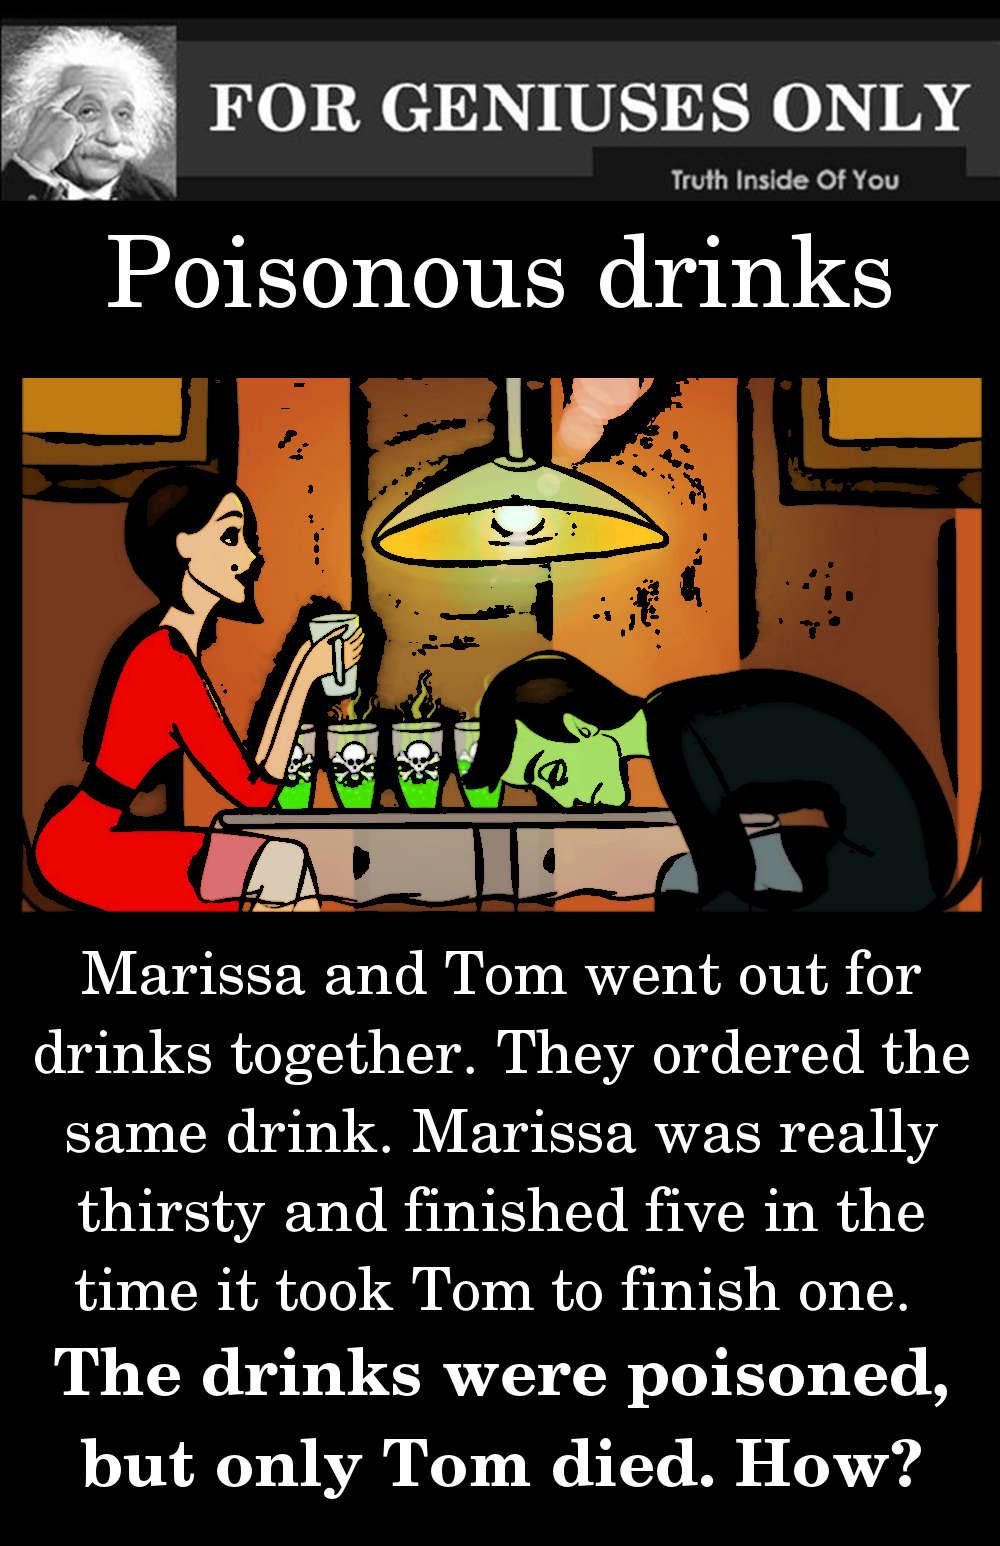 riddle Poisonous drinks